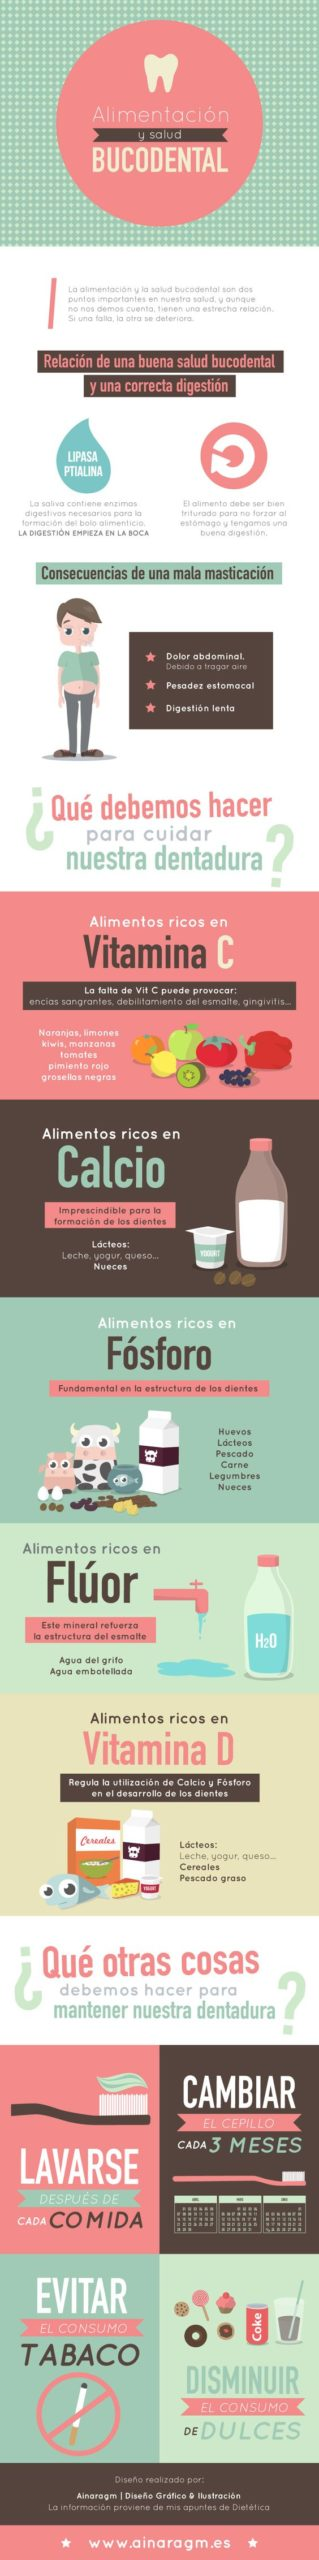 infografia nutricion y salud bucodental scaled